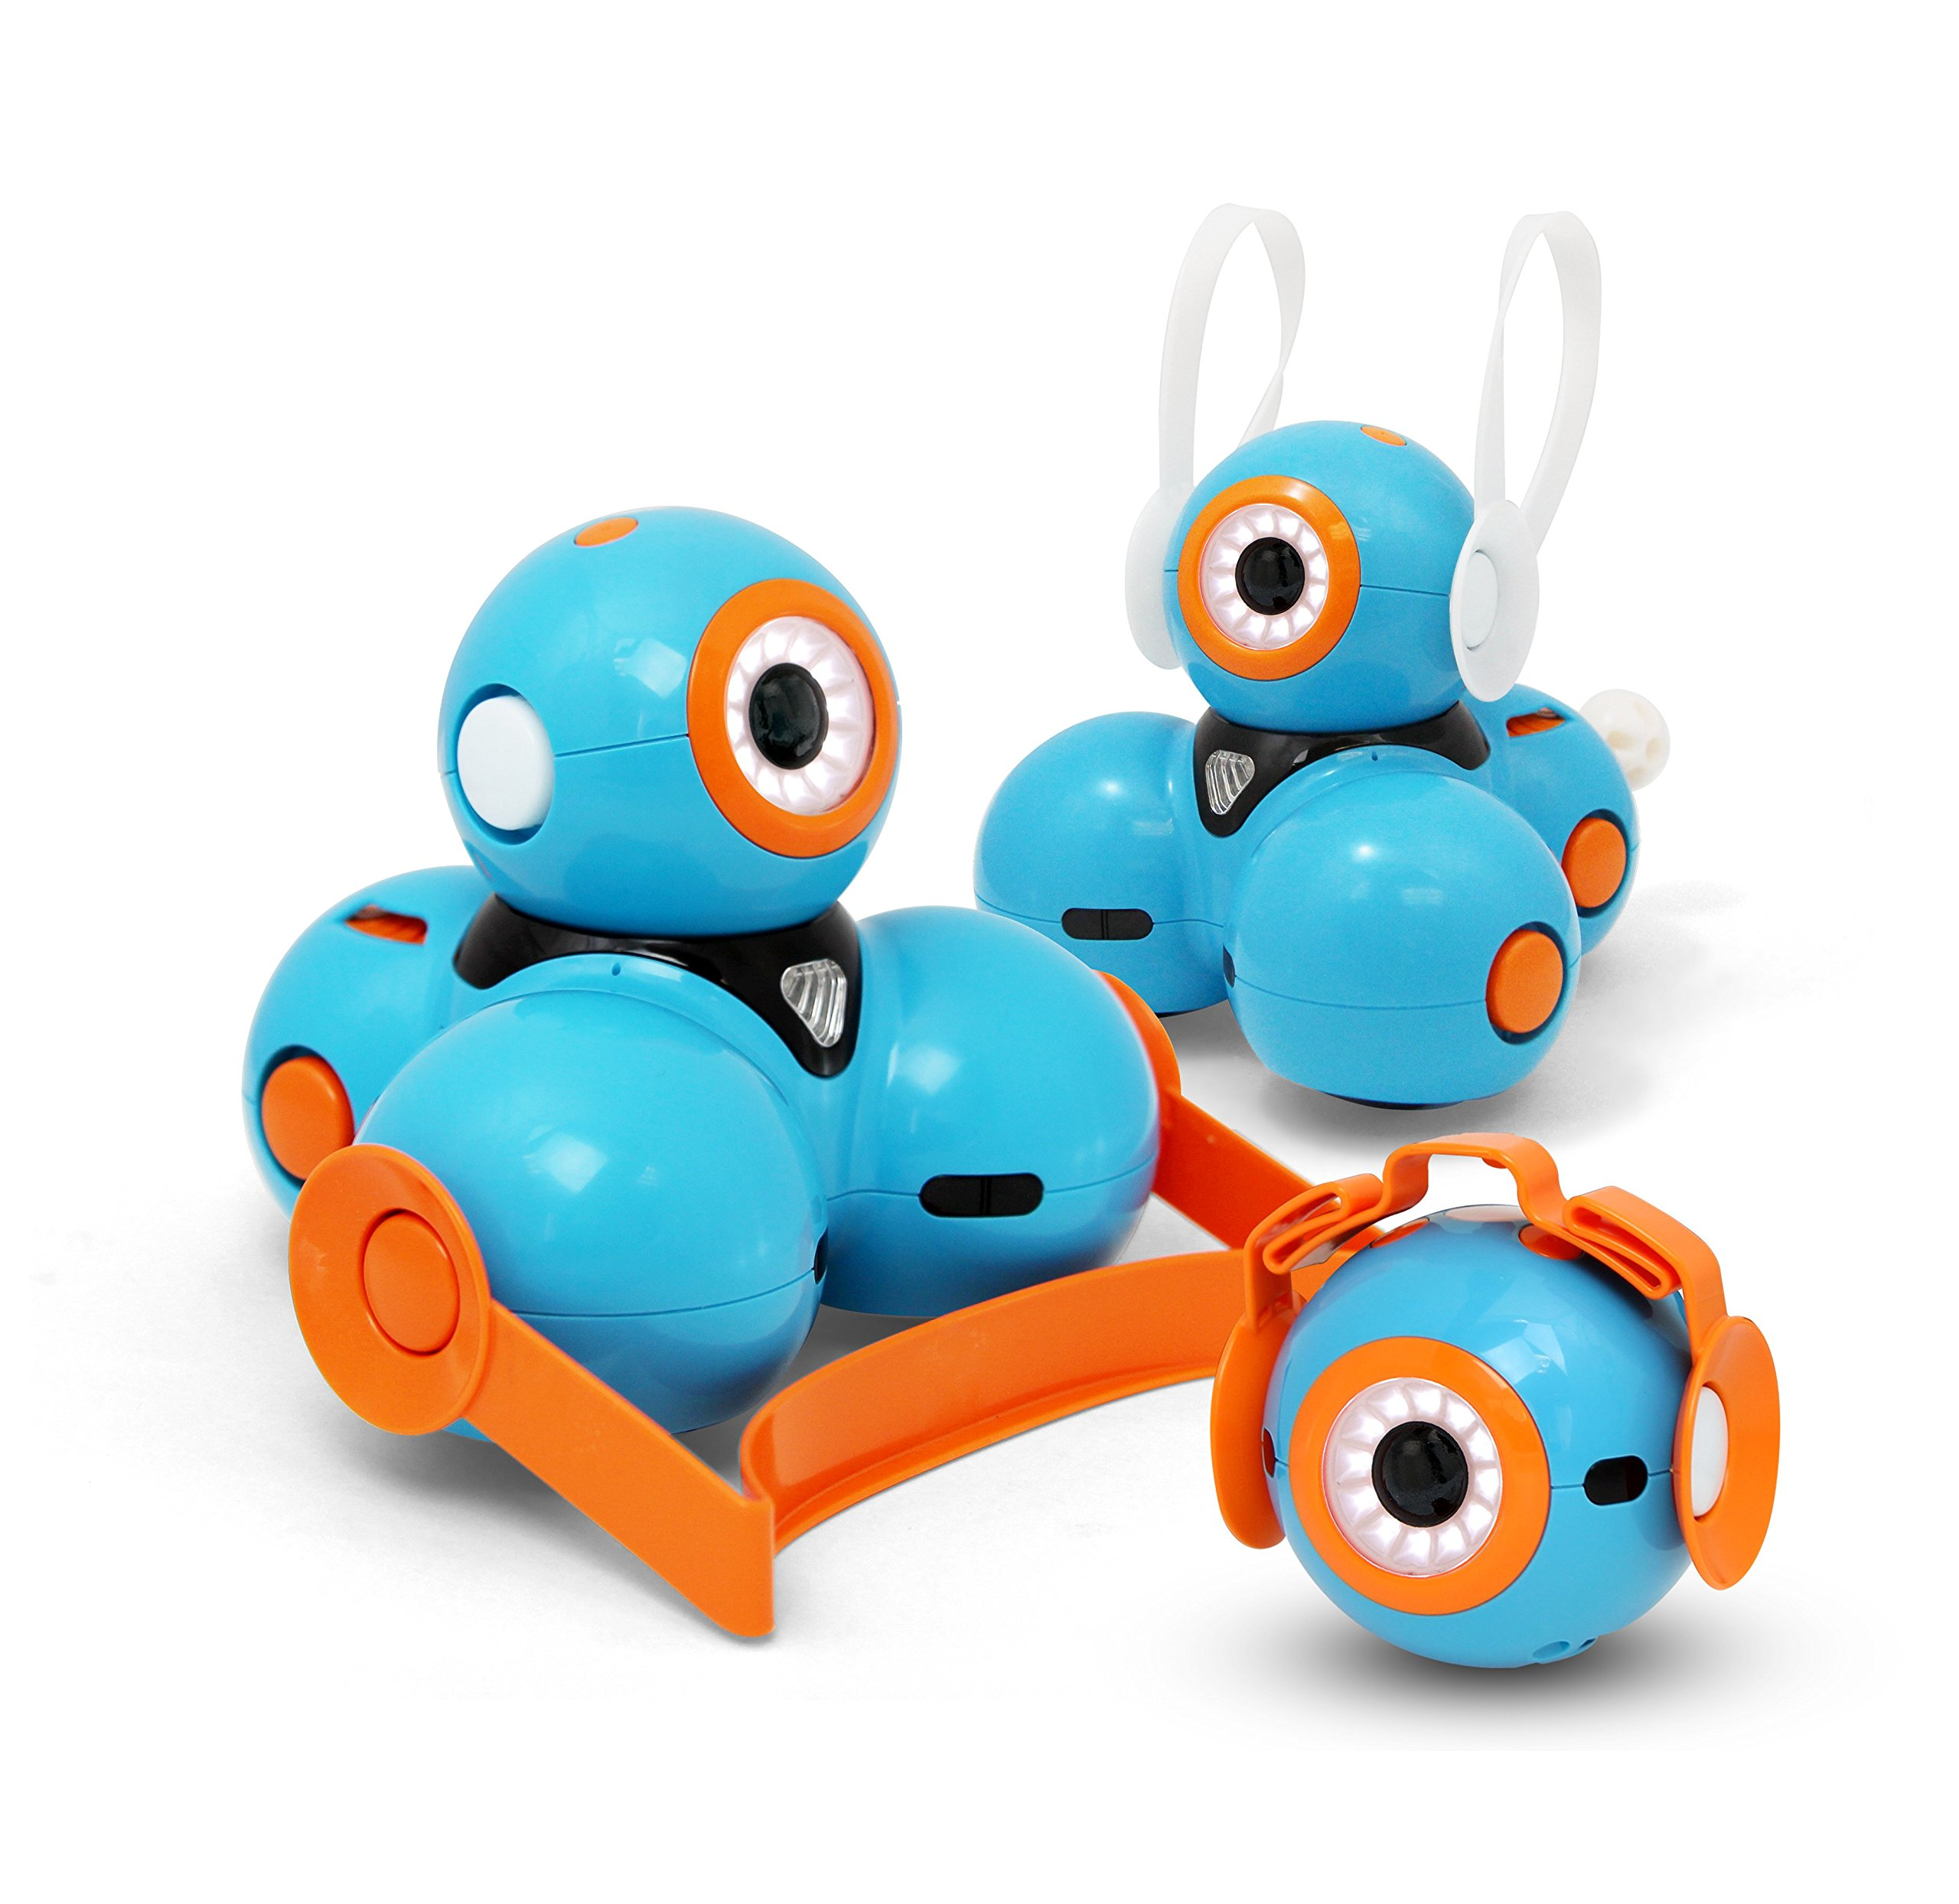 Wonder Workshop Accessories Pack for Dash and Dot Robots by Wonder Workshop (Image #2)